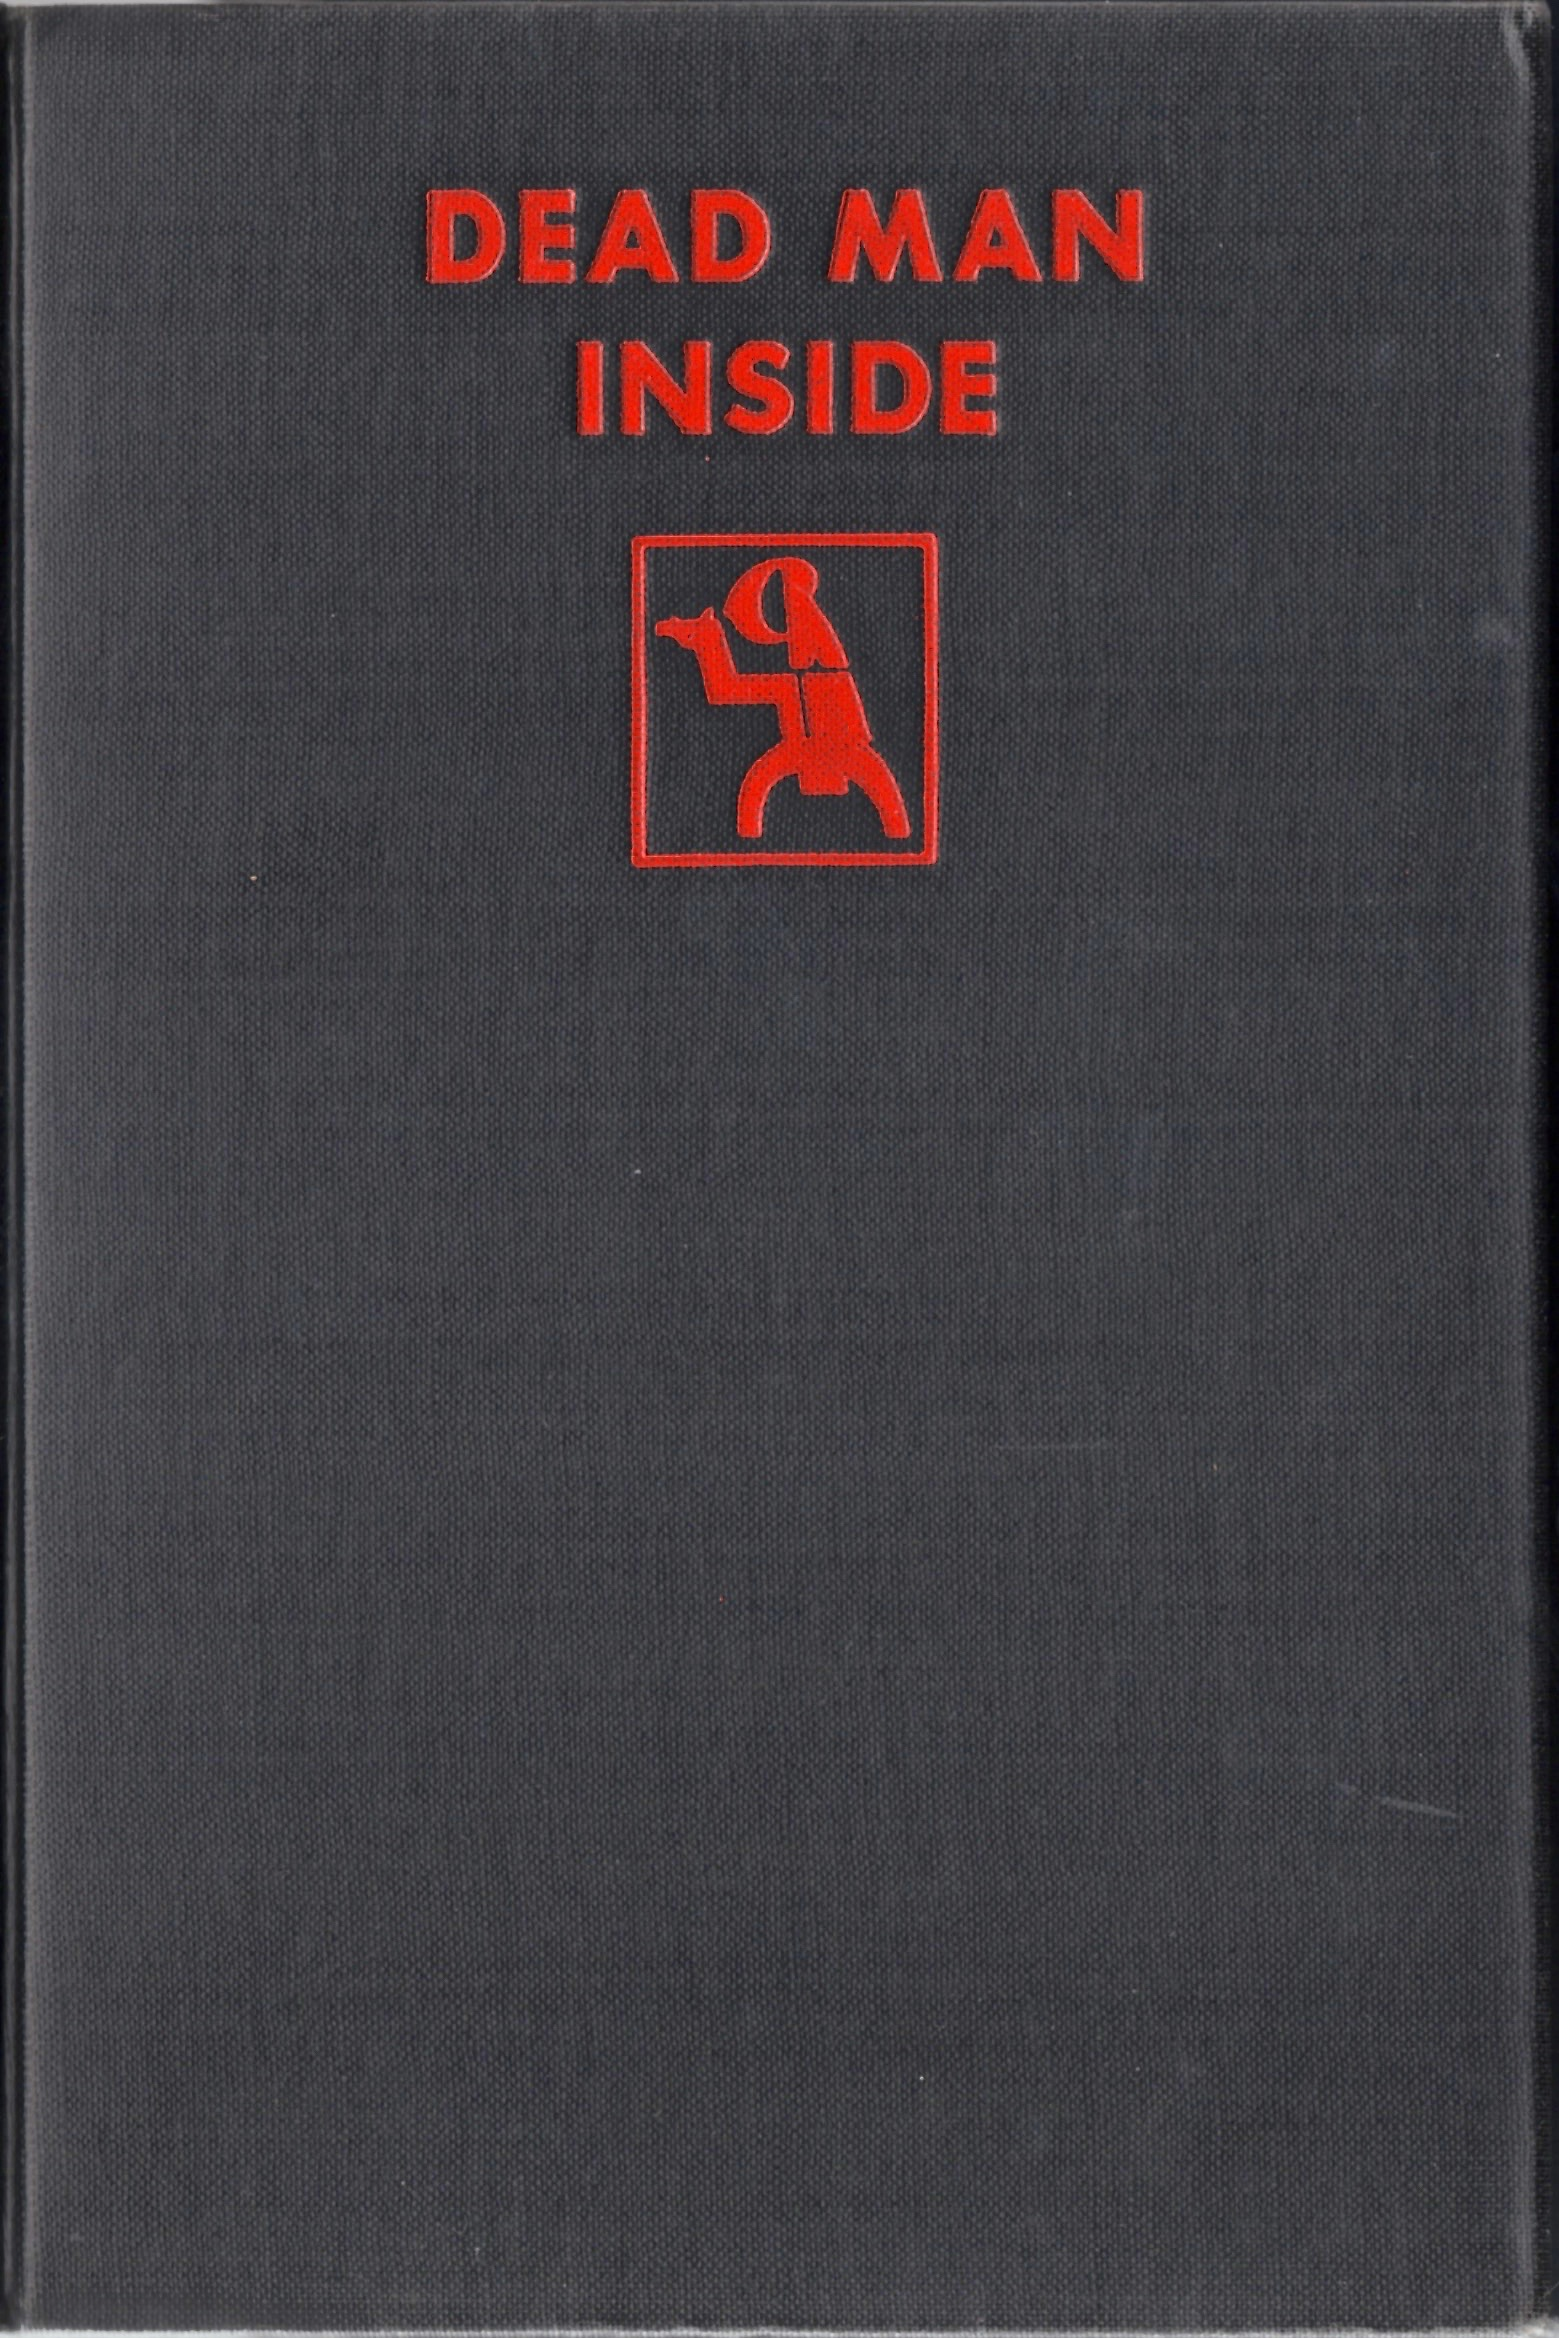 The cover of Starrett's 1931 mystery featuring Walter Ghost. Notice the Crime Club logo, which you can see in greater detail on the endpapers, reproduced below.